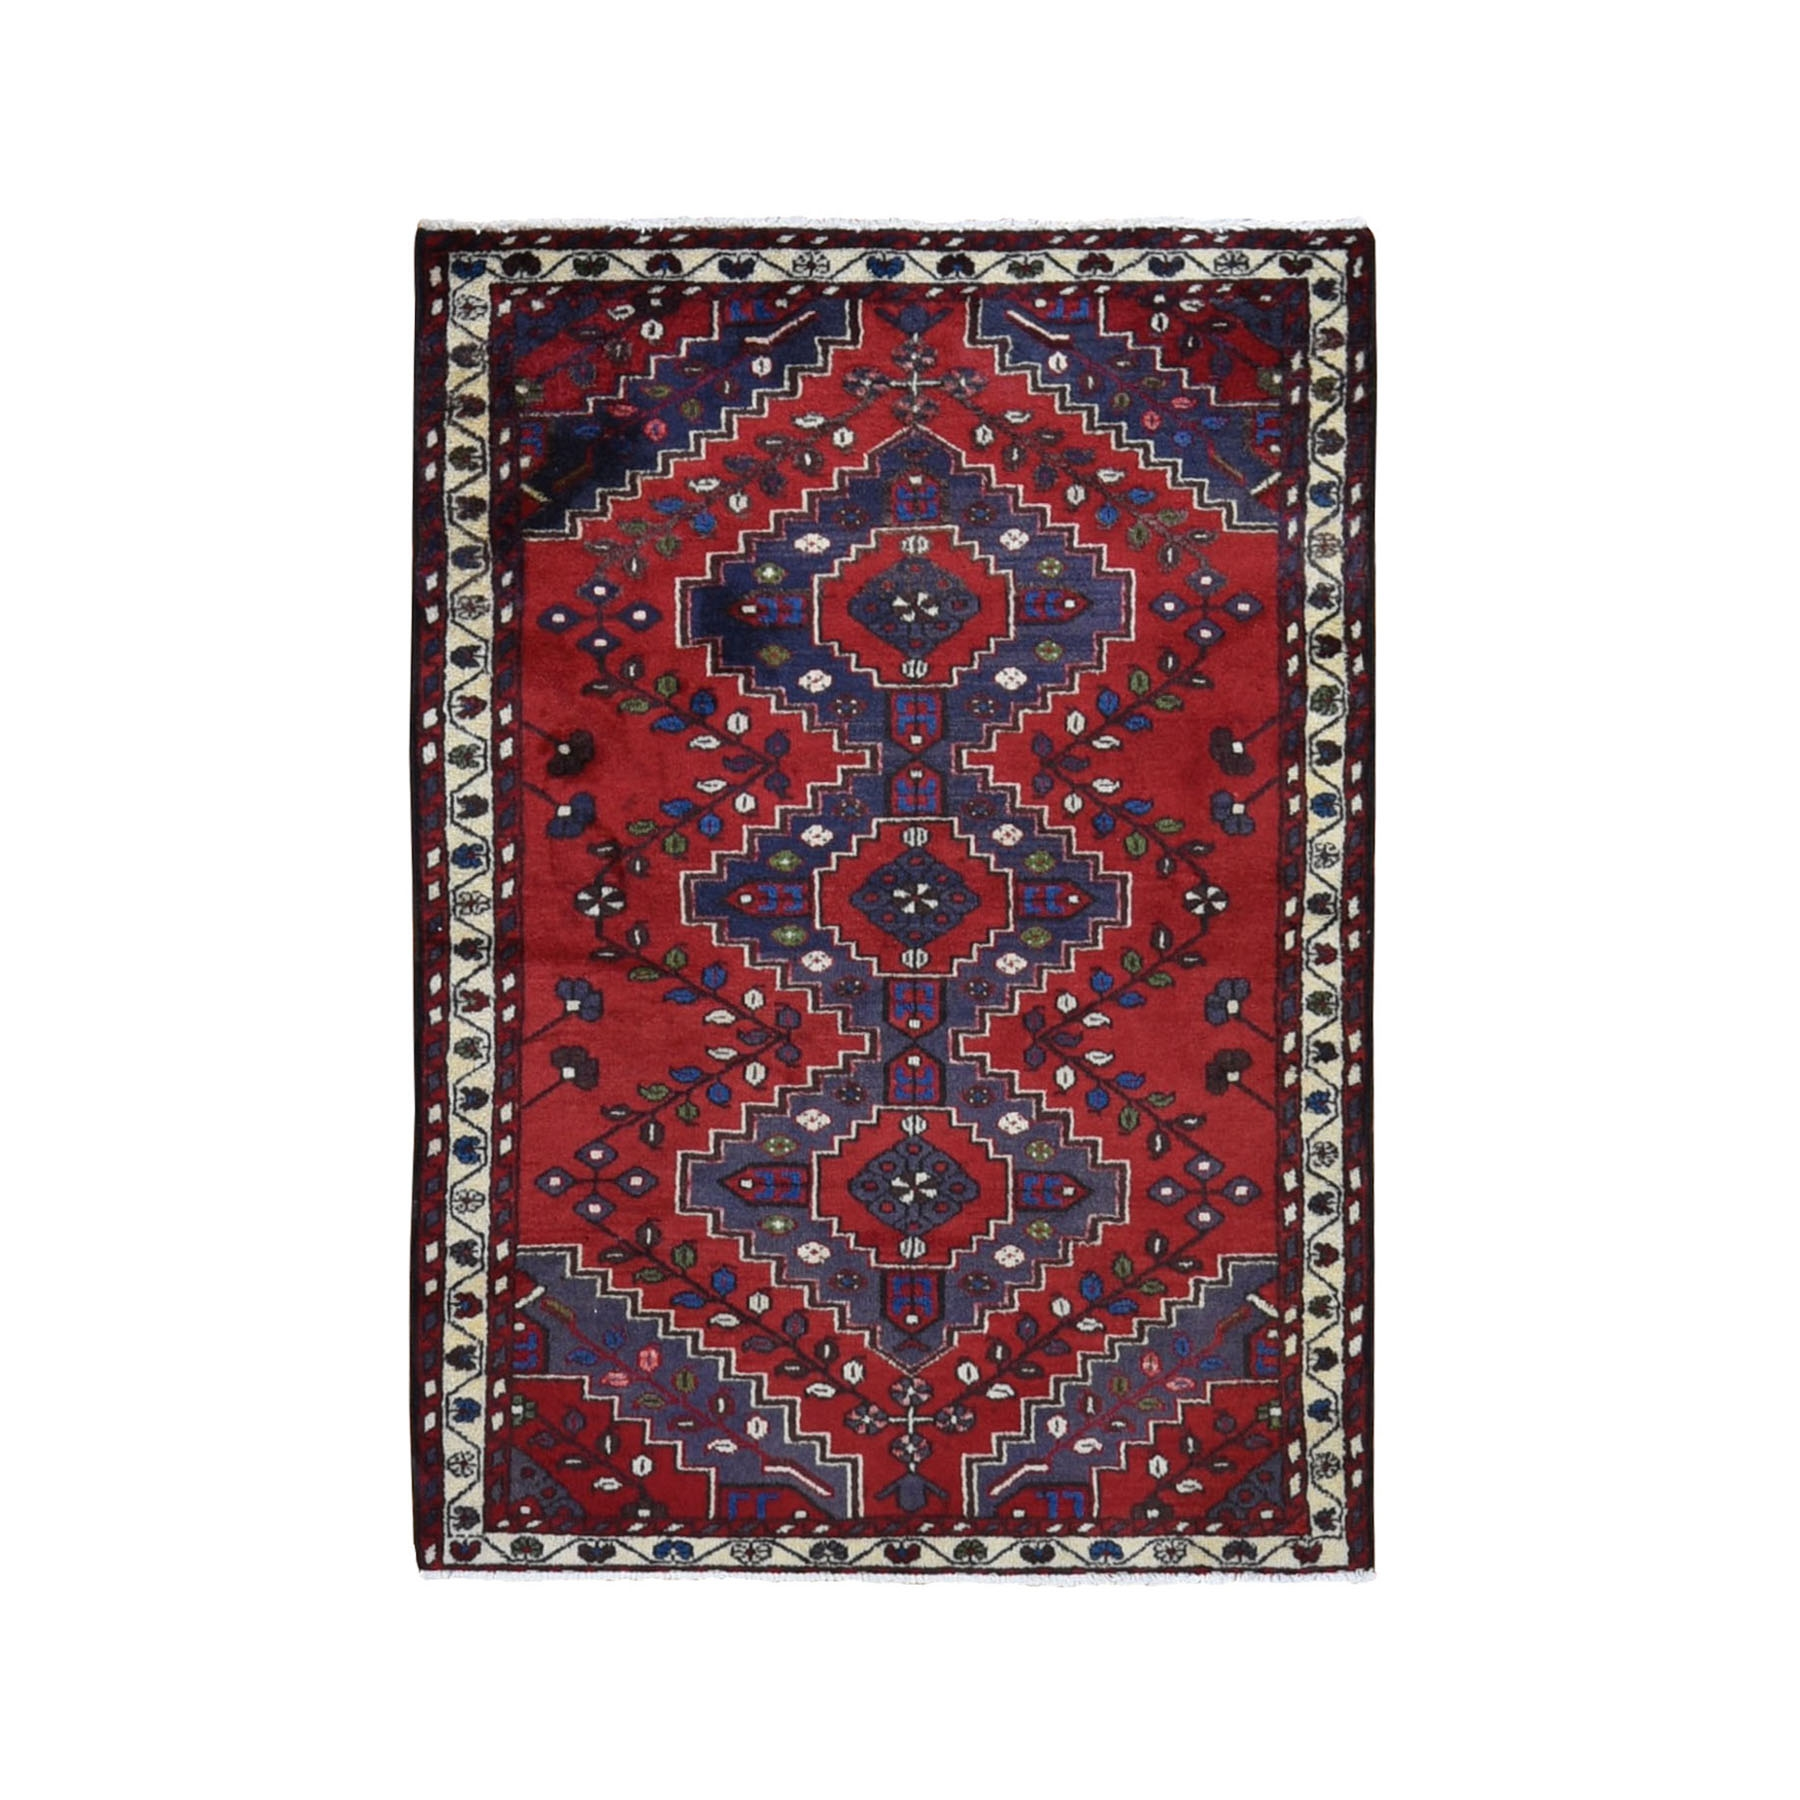 "3'5""x5' Red New Persian Pure Wool Tribal Design Hand Knotted Bohemian Rug"